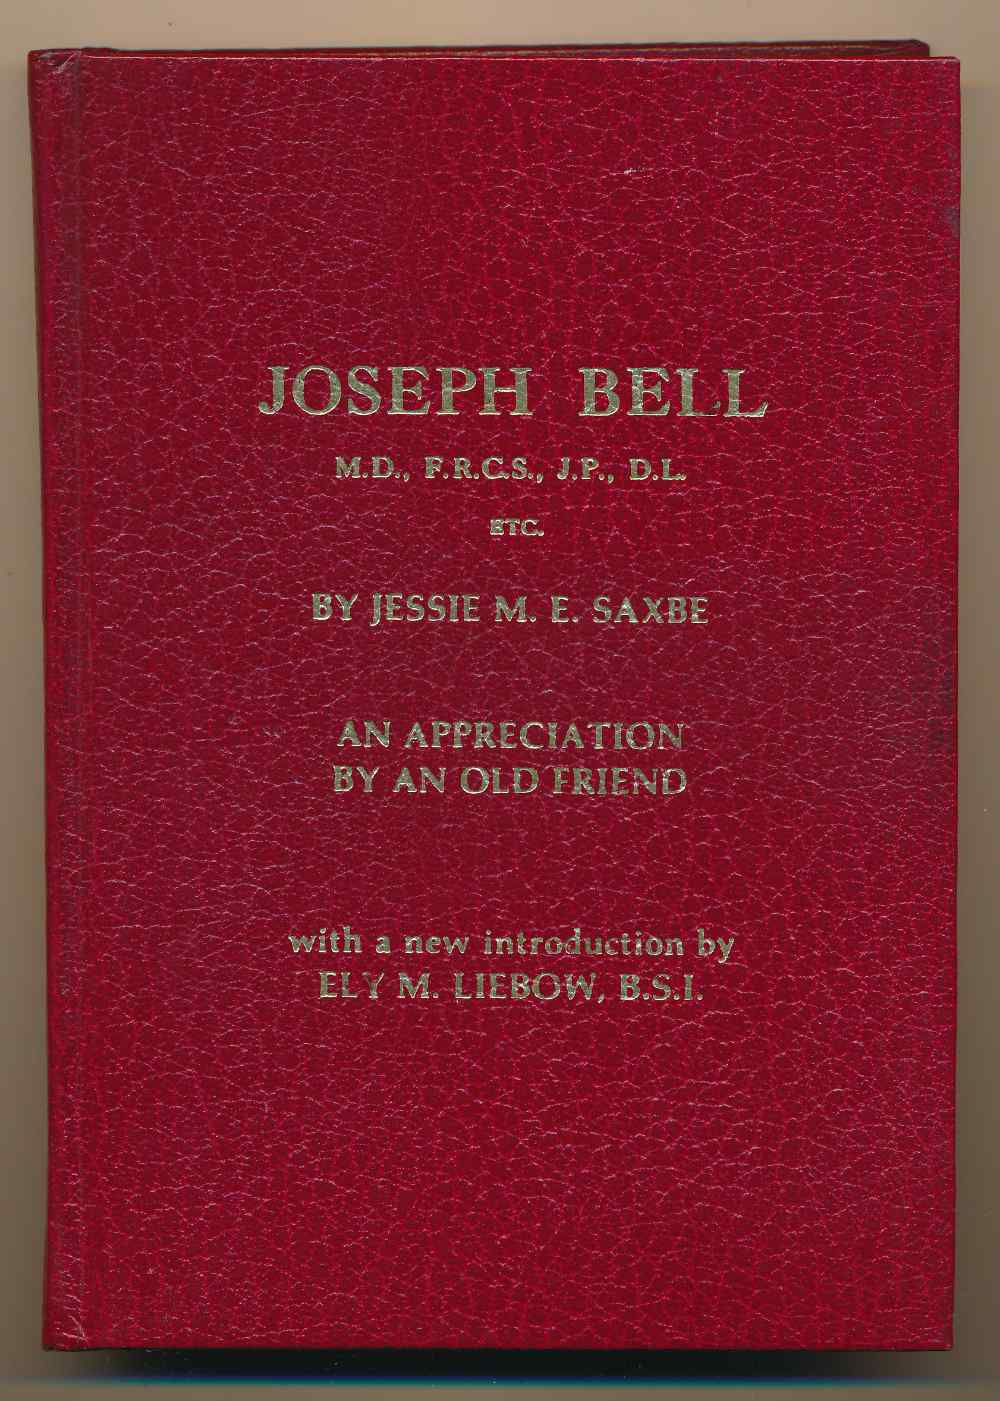 Joseph Bell M.D., F.R.C.S., J.P., D.L., etc. : an appreciation by an old friend